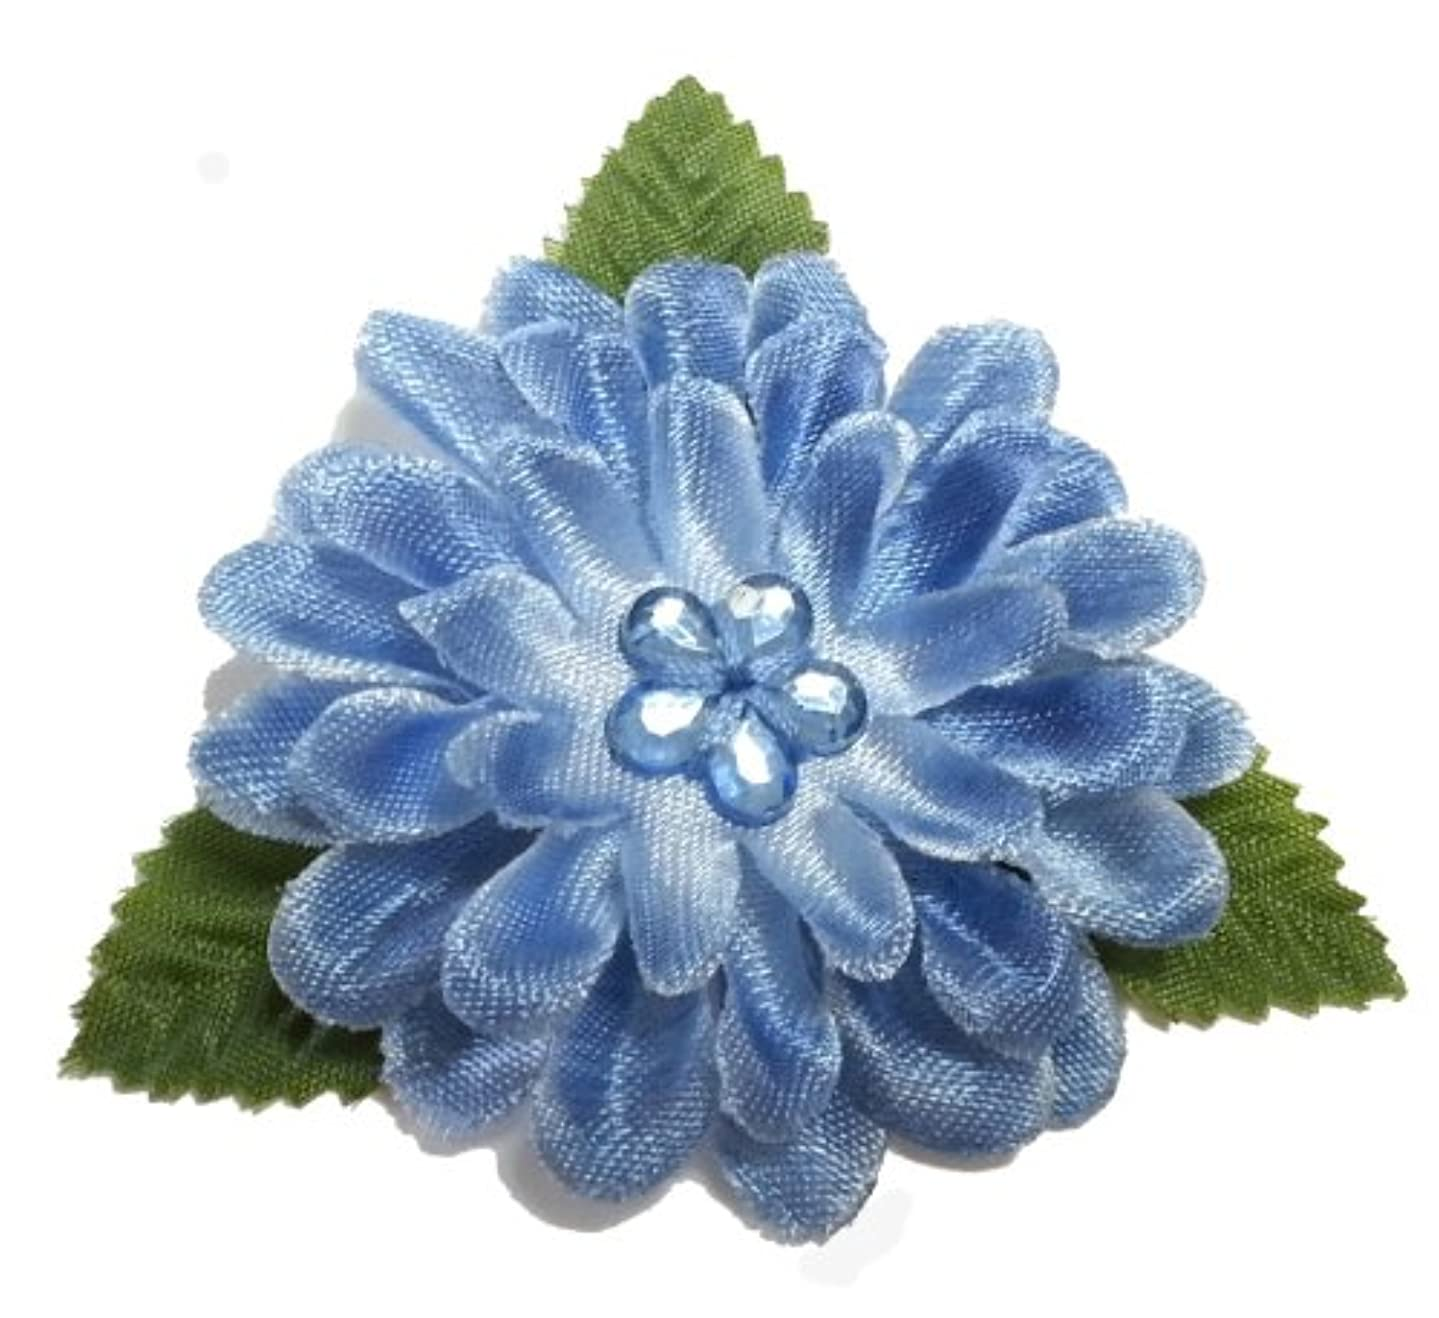 Cuteque International 2-1/4-Inch 12-Piece Chrysanthemum Scrapbooking Embellishments, Small, Antique Blue